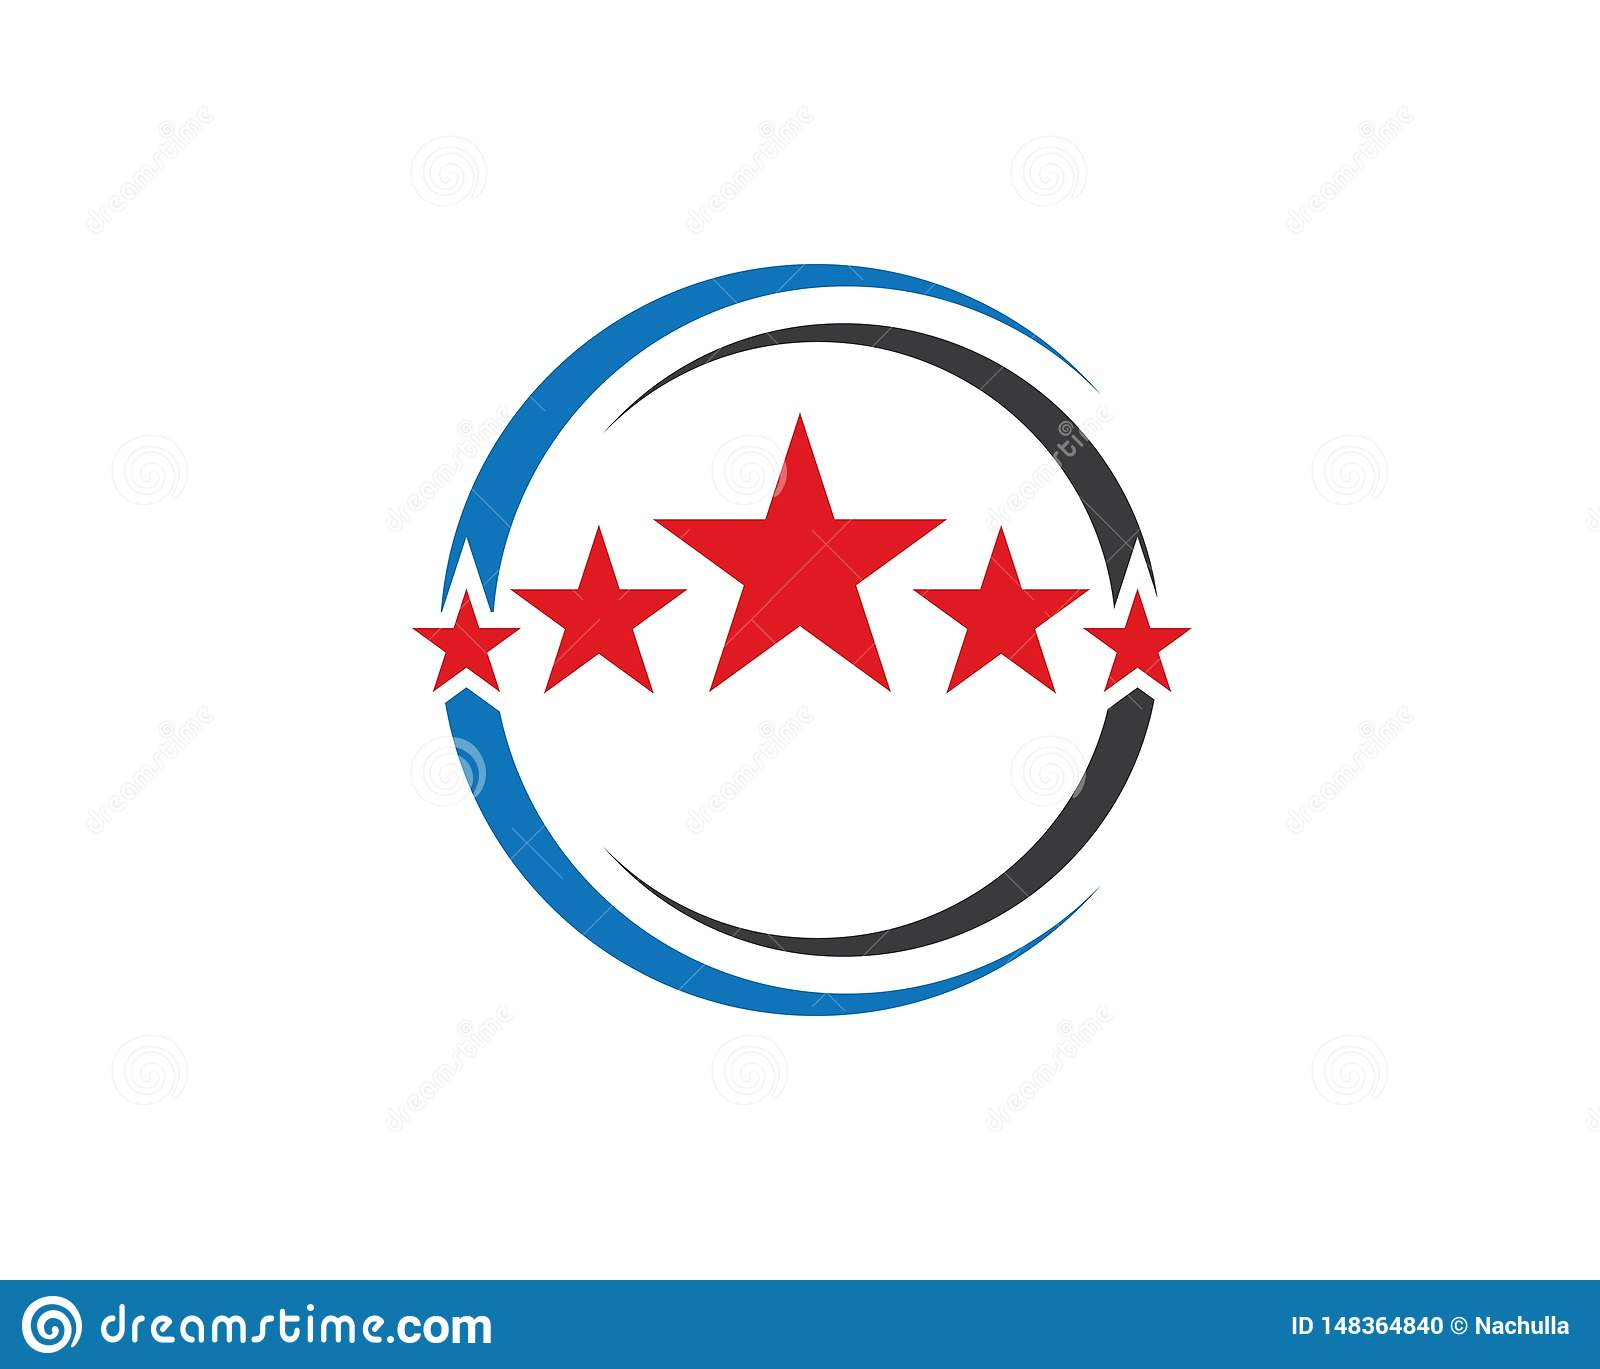 circle and Star icon Template vector